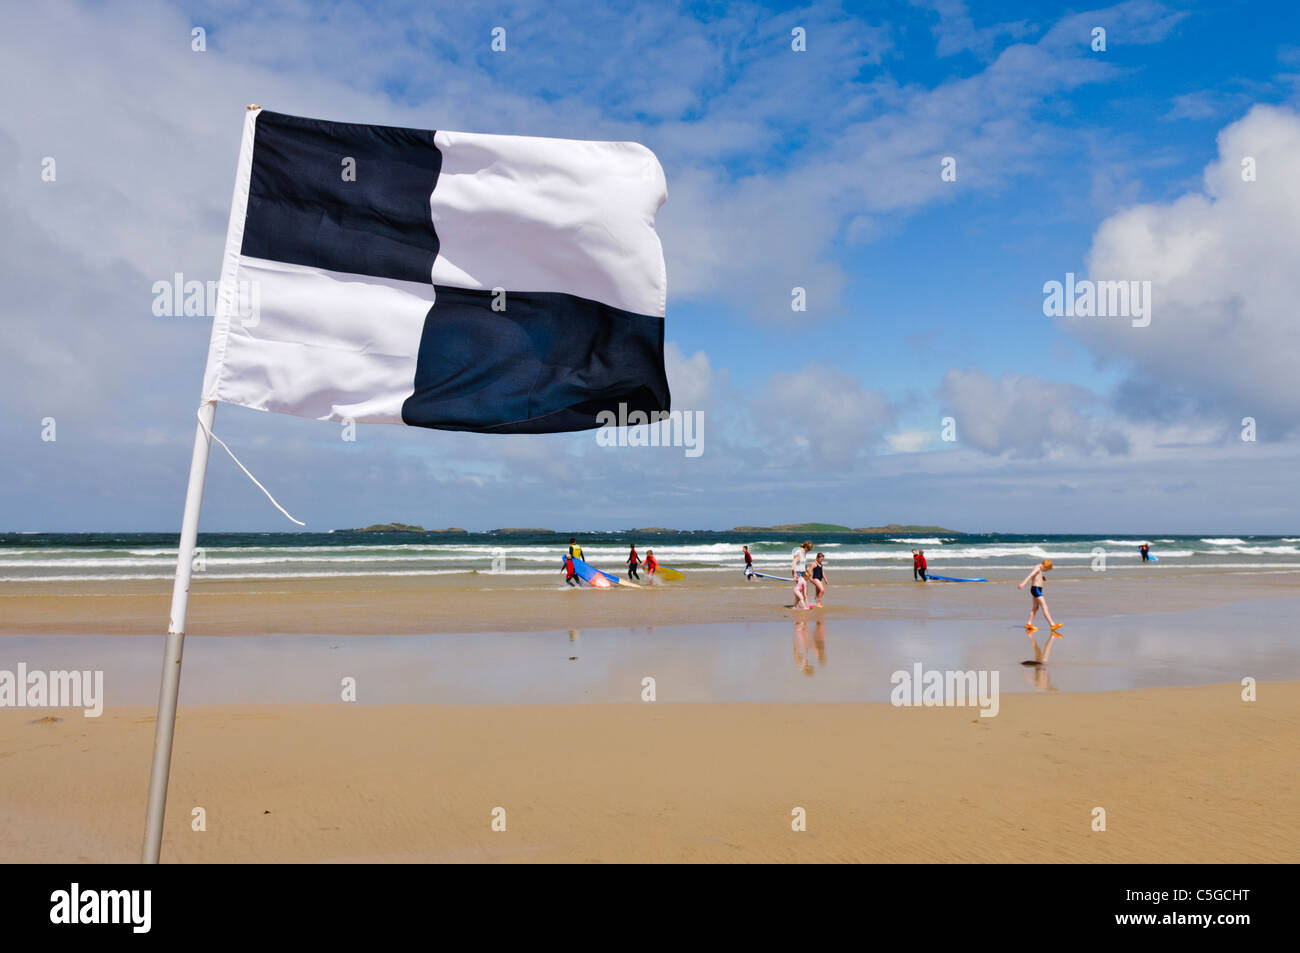 Black and white chequered surfers flag warning swimmers that surfers and kayaks are in the area - Stock Image